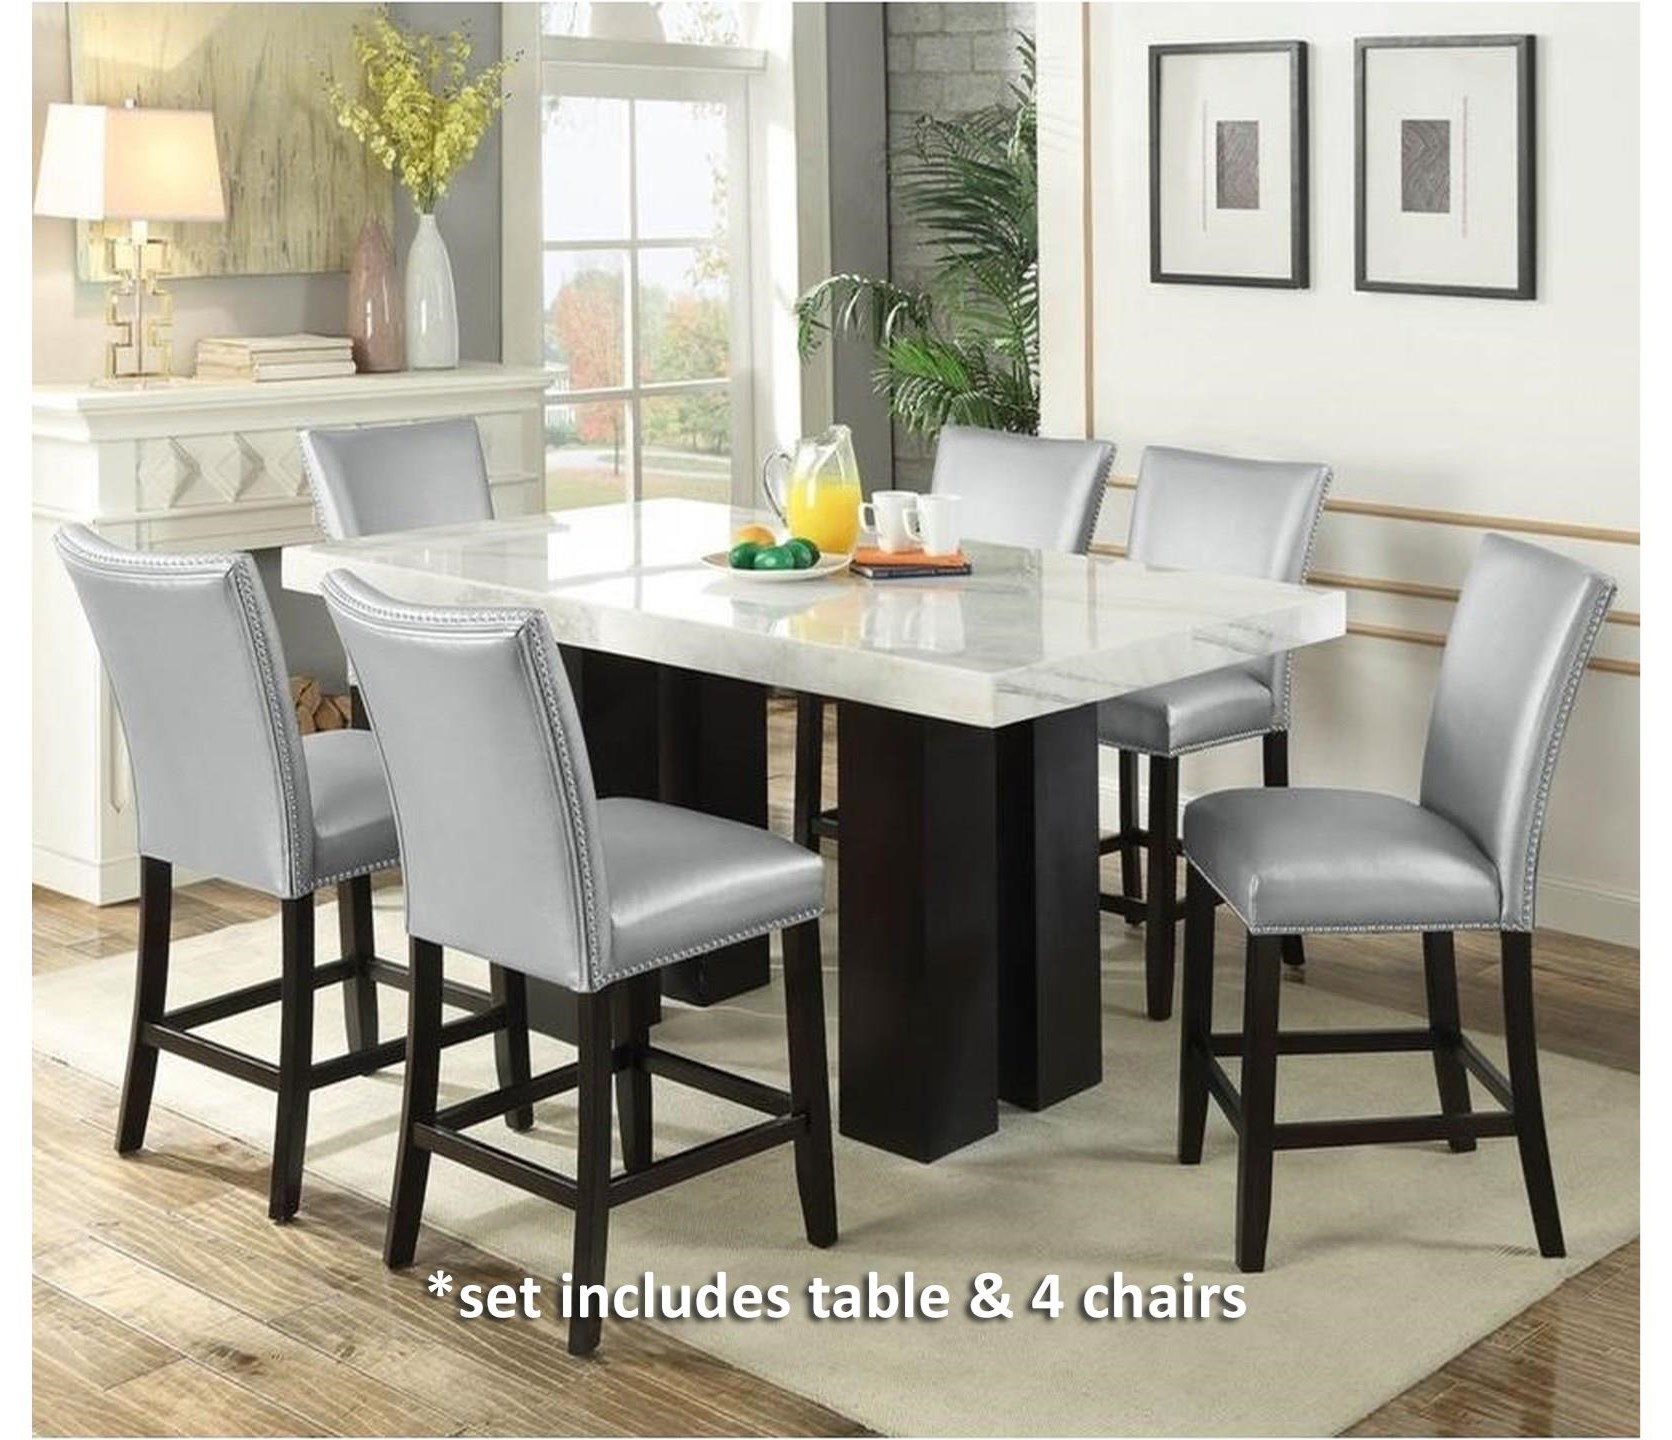 Camila 5 Piece Counter Height Dining Set at Ruby Gordon Home